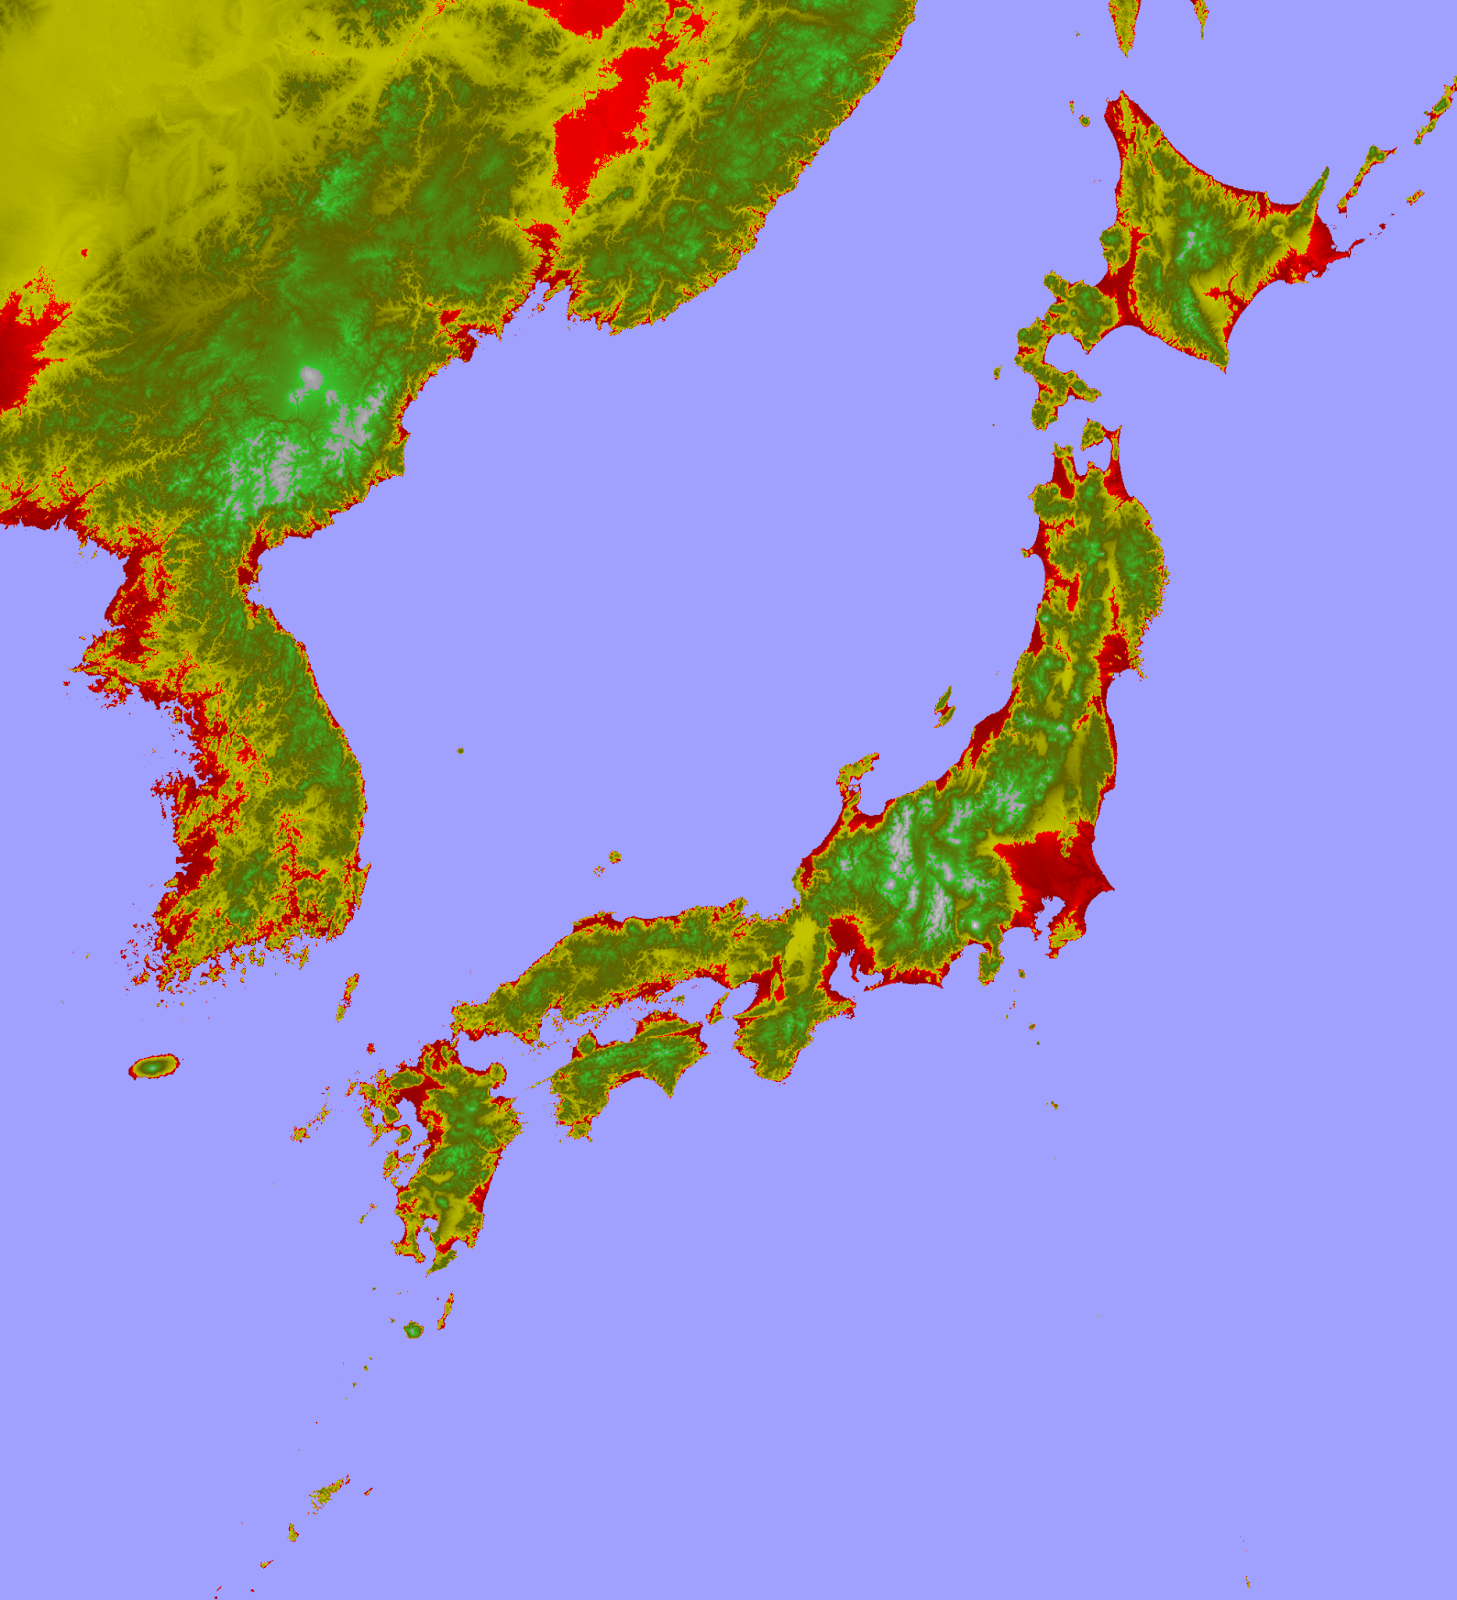 Submerged areas of Japan for a postulated 80m sea level rise ... on energy map, geographic information system map, coastal change map, elevation map, game level map, travel risk map, summit map, rehab map, sea fish, sea bass map, traffic map, high altitude map, sea rise map, environment map, baltic sea map, contrast map, sea surface temperature map, new jersey topographic map, deep sea map, contour line map,